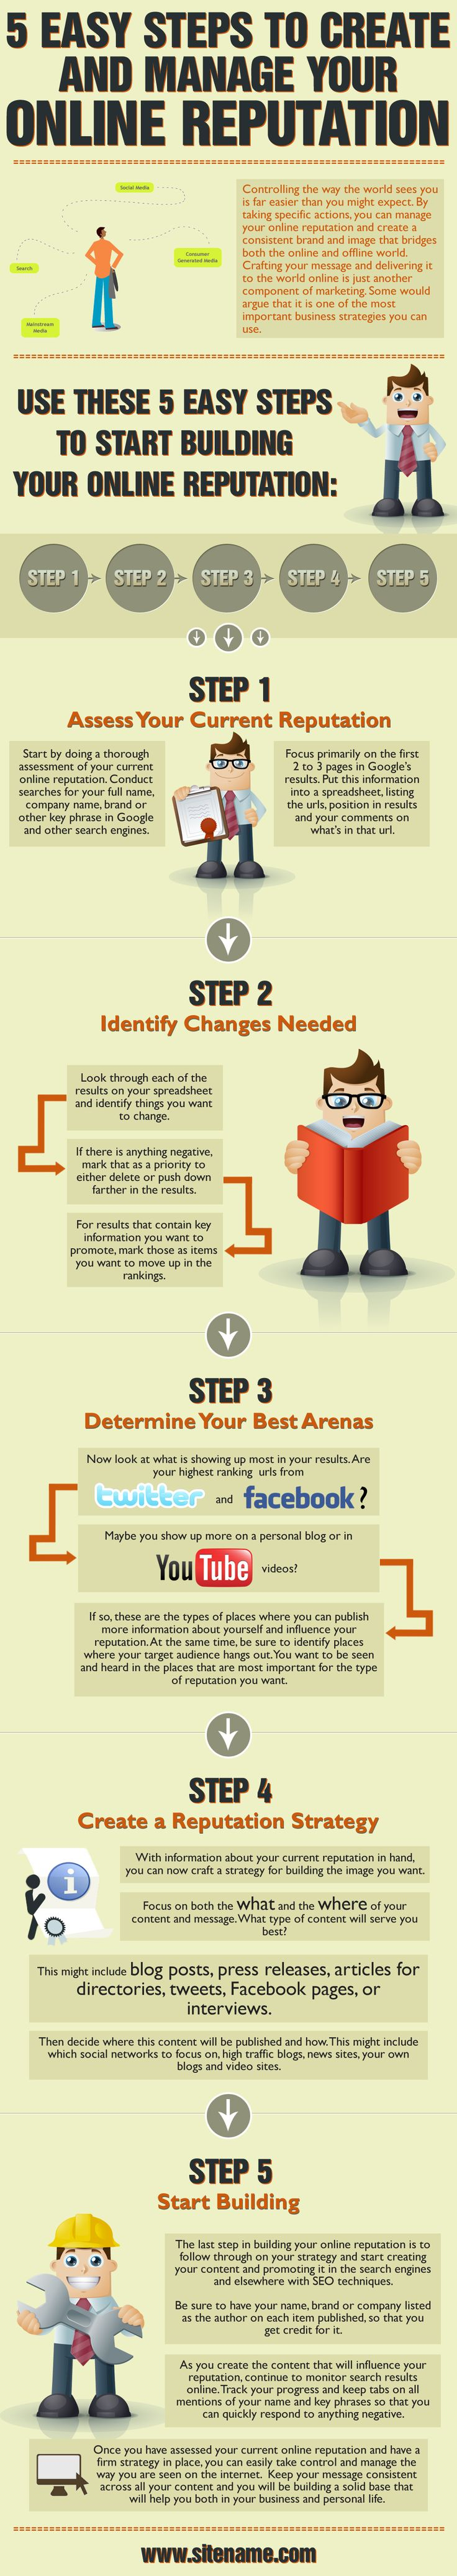 5 steps to manage you online reputation  #Infographic www.socialmediamamma.com